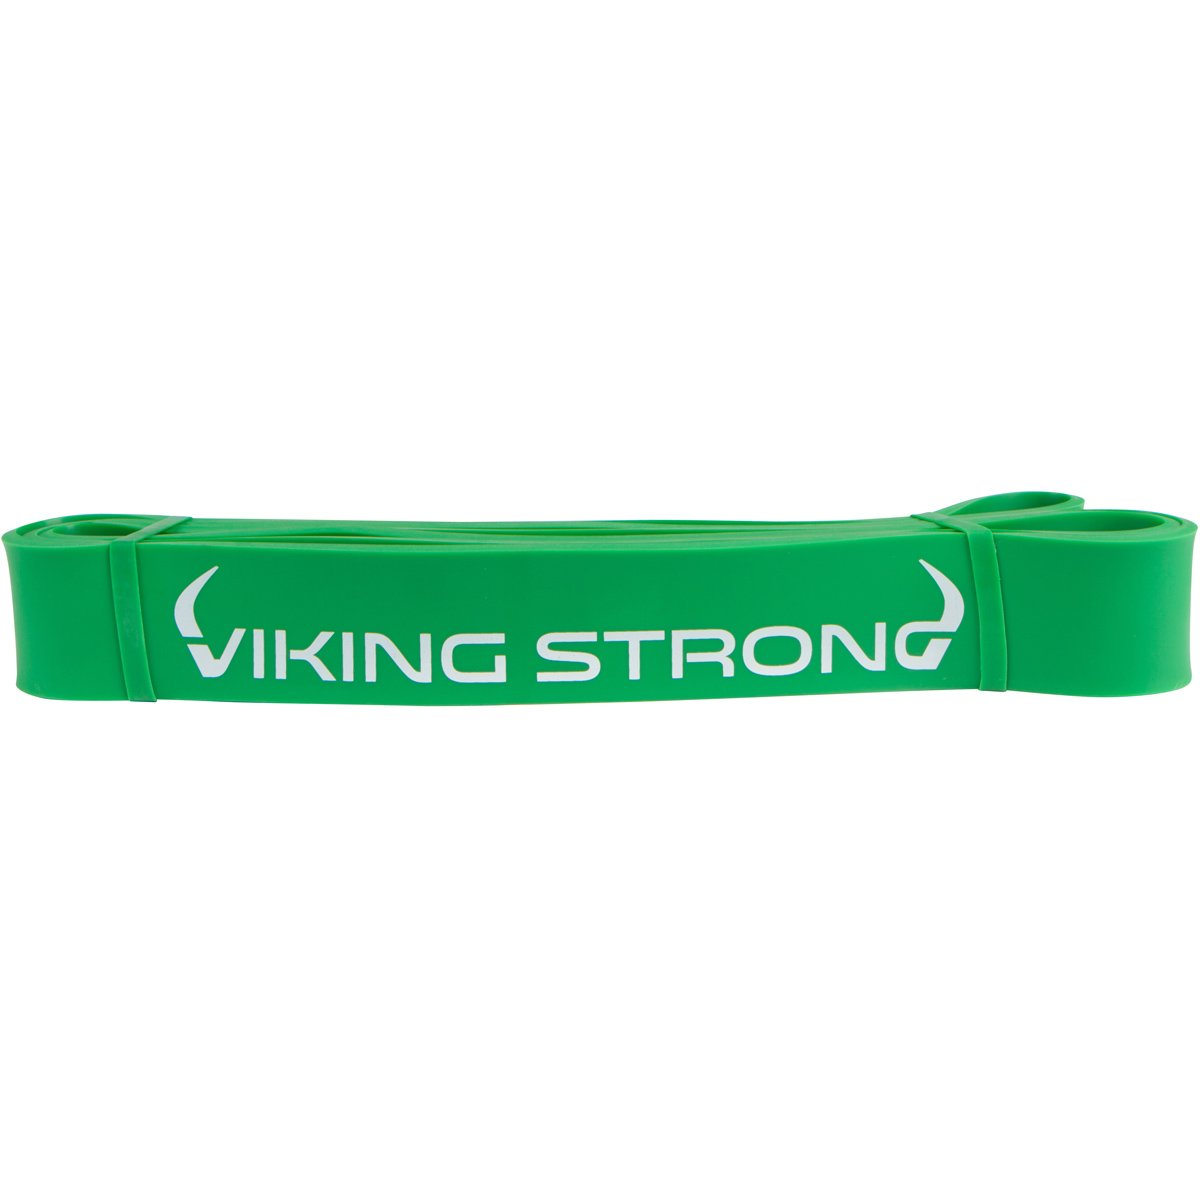 Viking Strong Pull Up Bands Powerlifting Bands Pull-Up Assist Bands Jump Stretch Bands.Includes E-Guide Purple 40-80lbs Single Band Choose ONE of Five, NOT A Set: Single Pull UP Band Resistance Bands Mobility Band